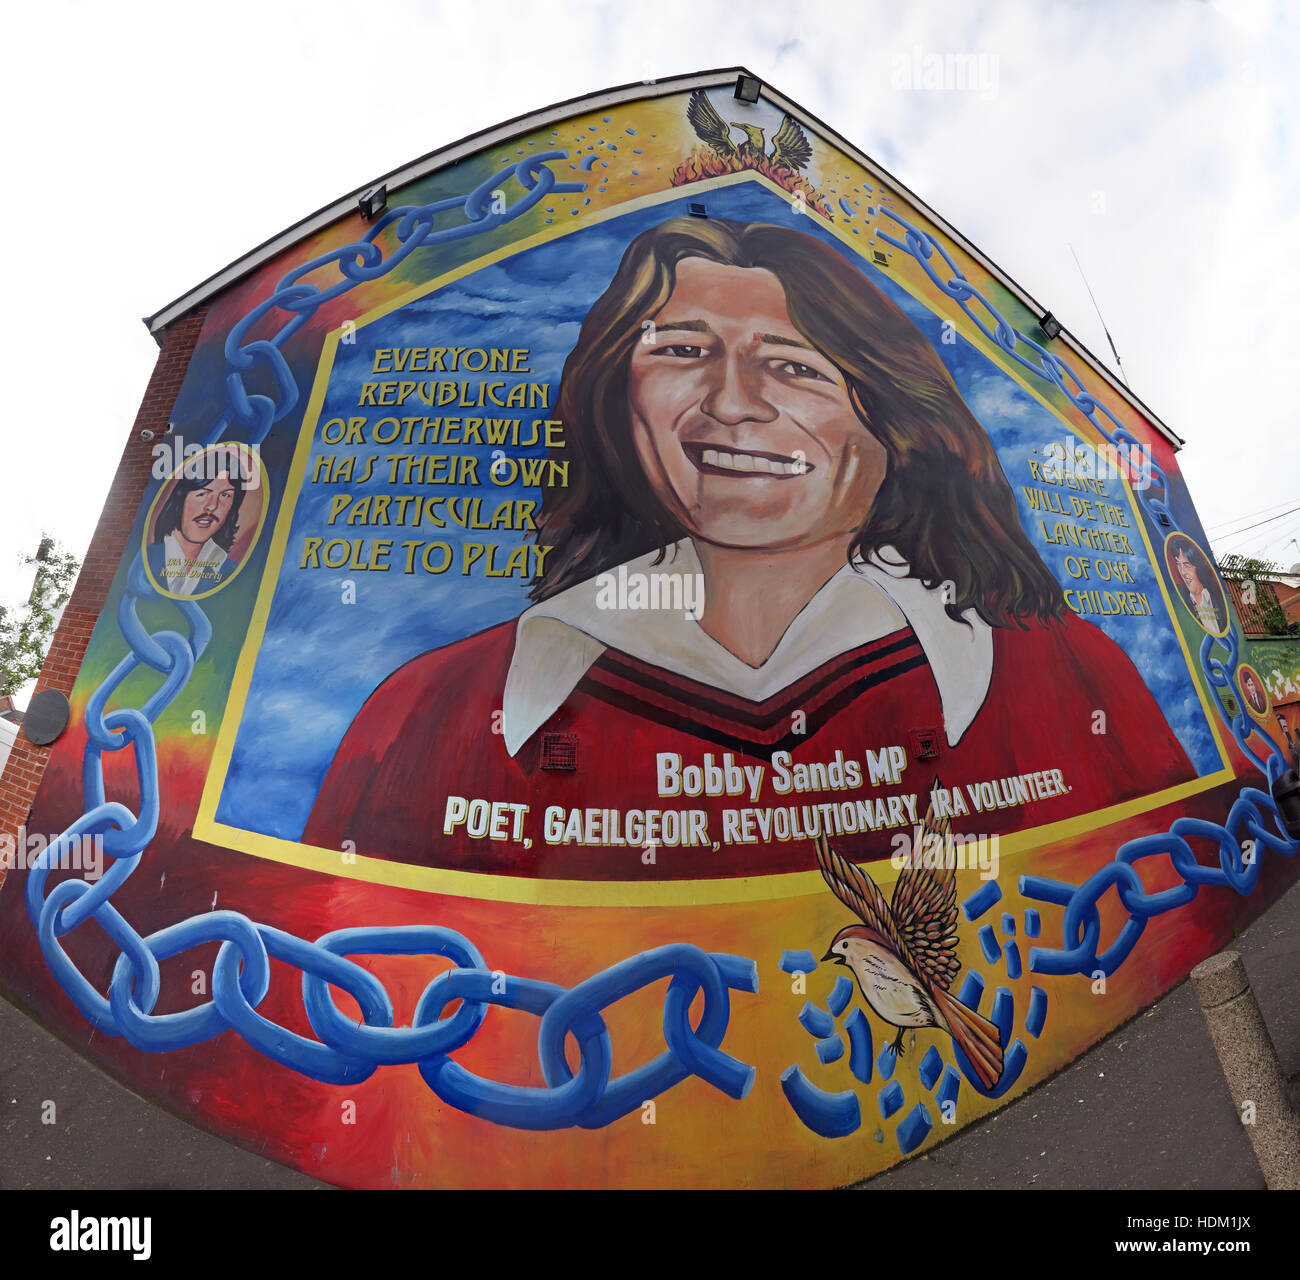 Belfast Falls Rd Republican Mural- Bobby Sands Poet,Revolutionary,IRA Volunteer on gable end wide angle - Stock Image